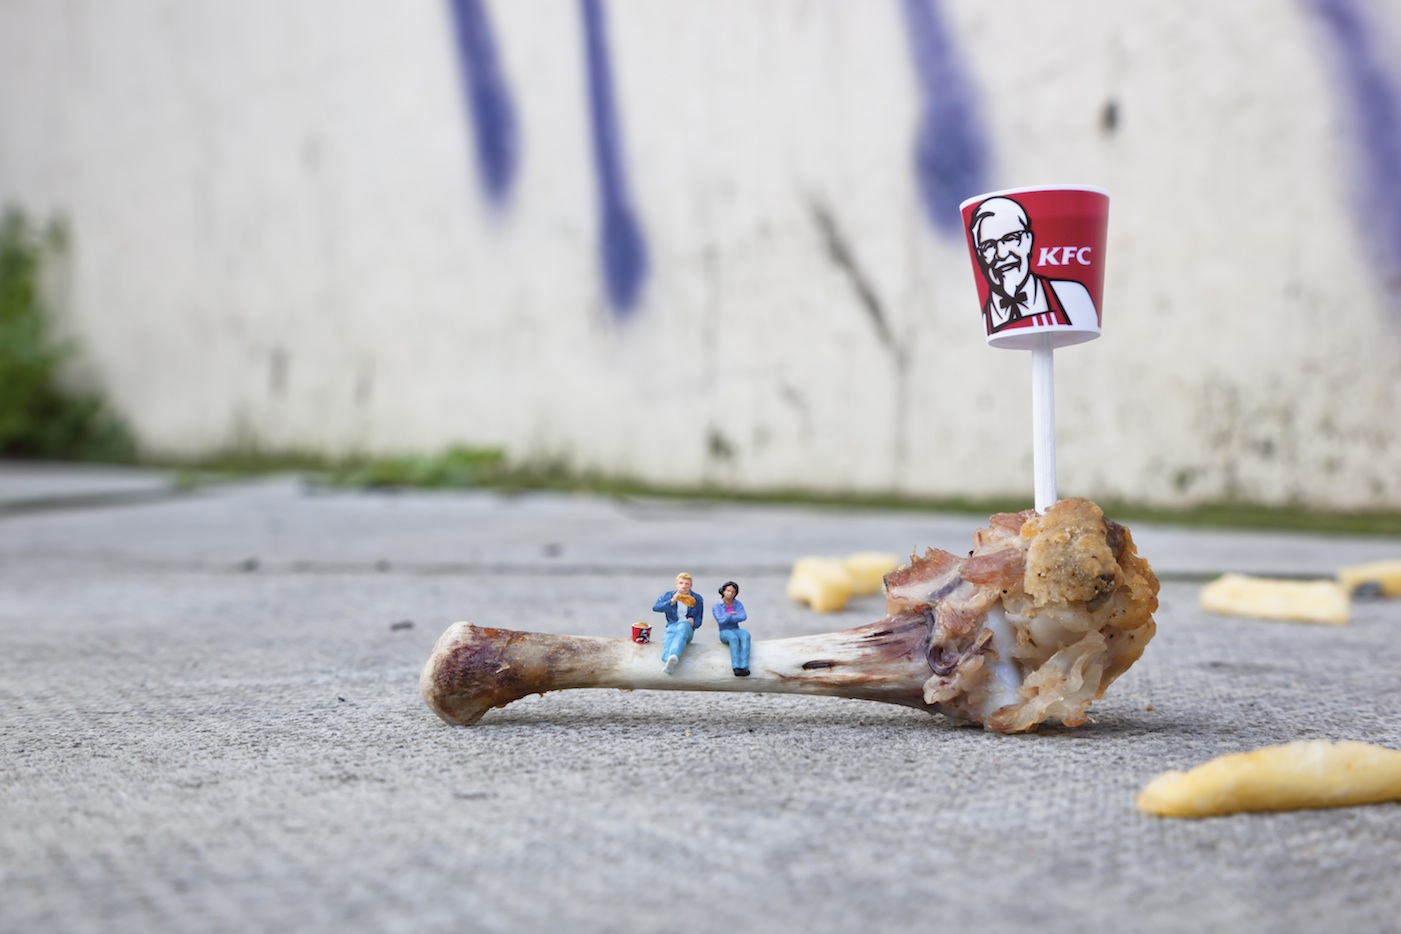 The little people project, la micro street art di Slinkachu | Collater.al 16